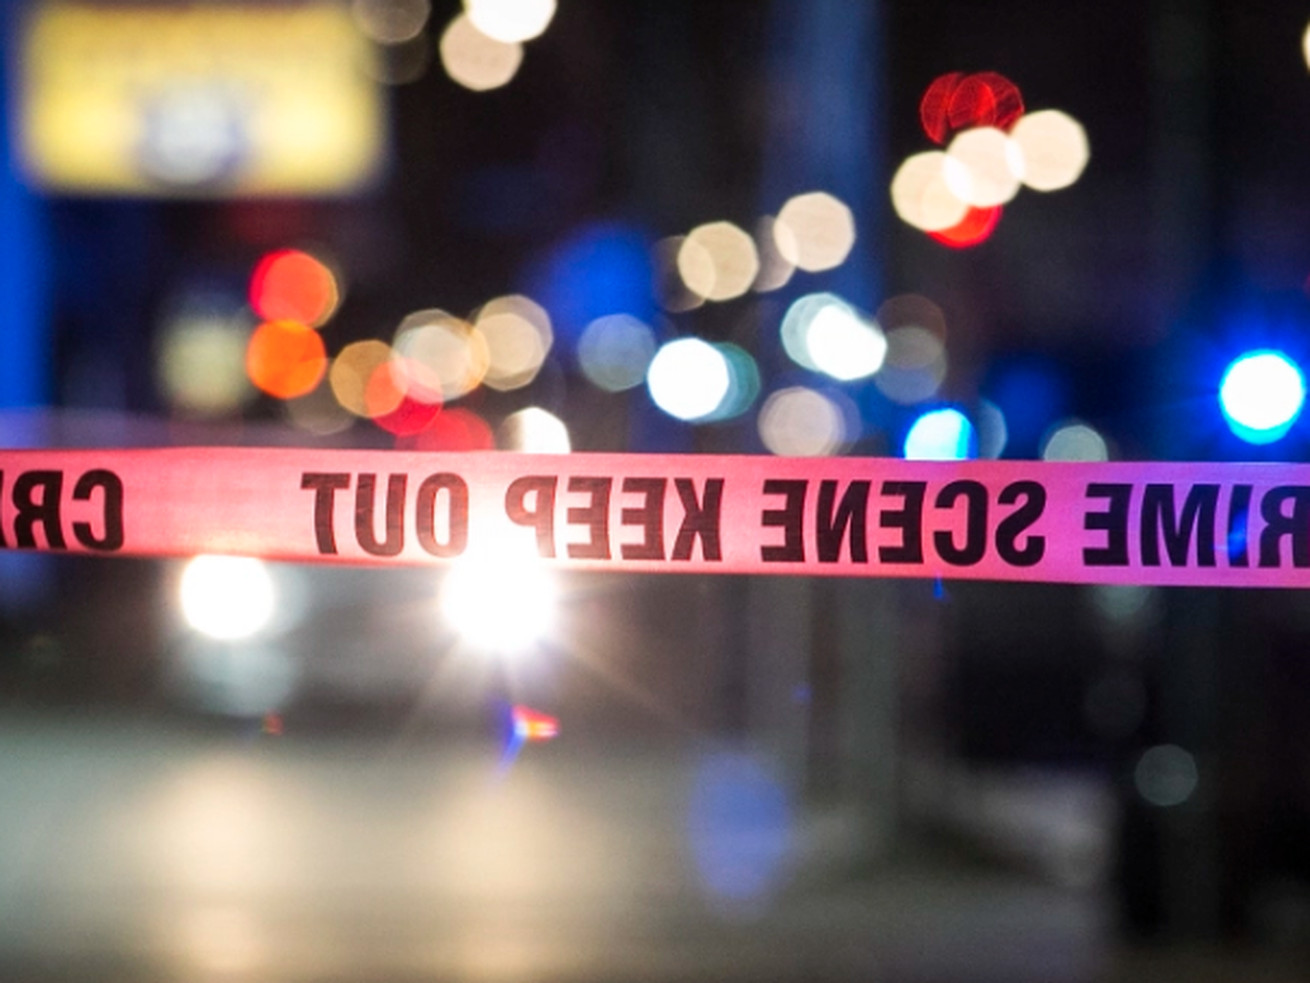 Six people were shot, one fatally, June 3, 2021 in Chicago.